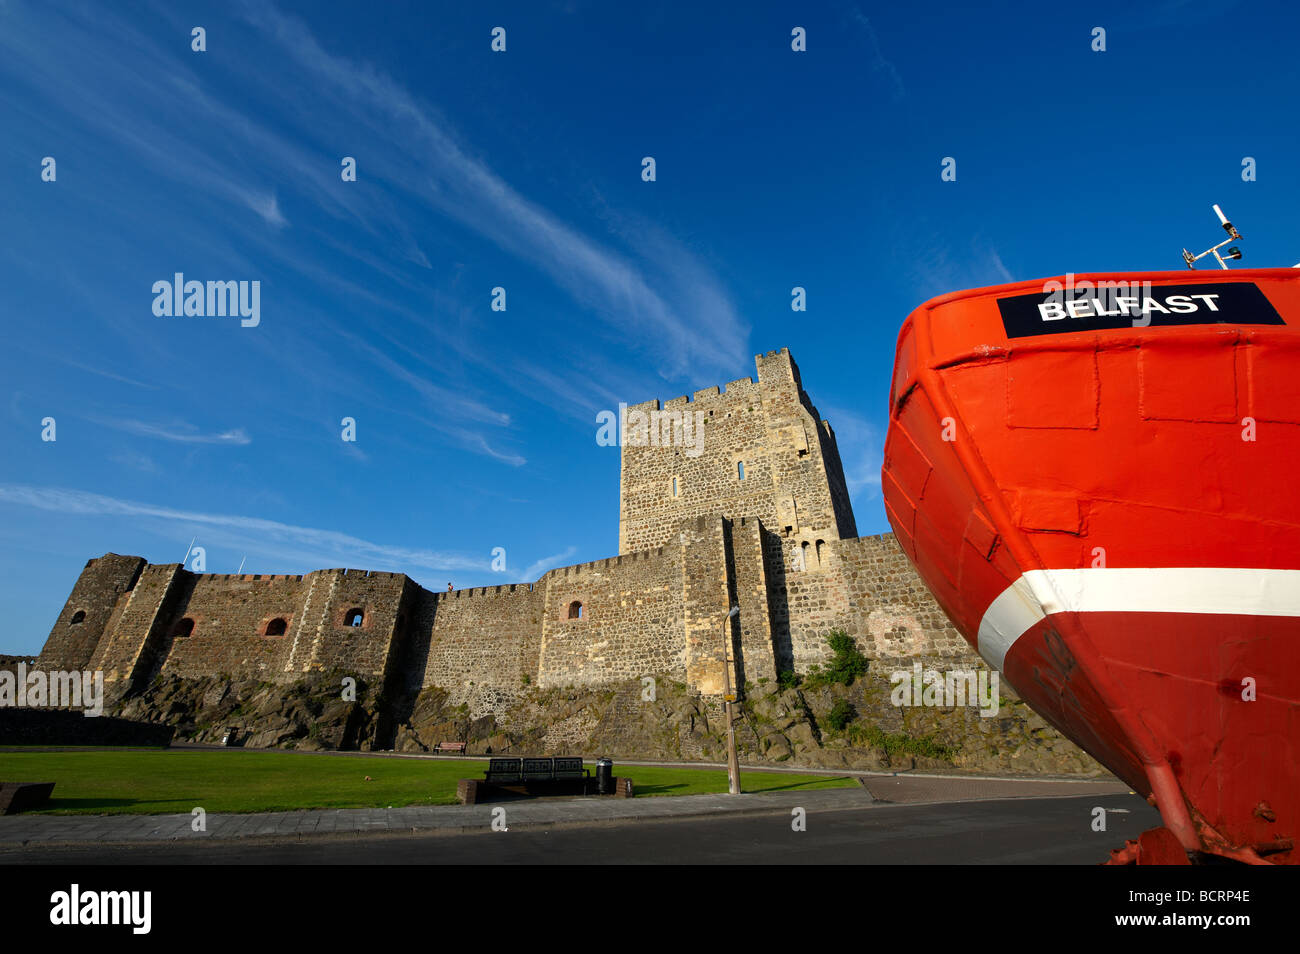 Carrickfergus Castle with the front of a fishing trawler in the foreground County Antrim - Stock Image